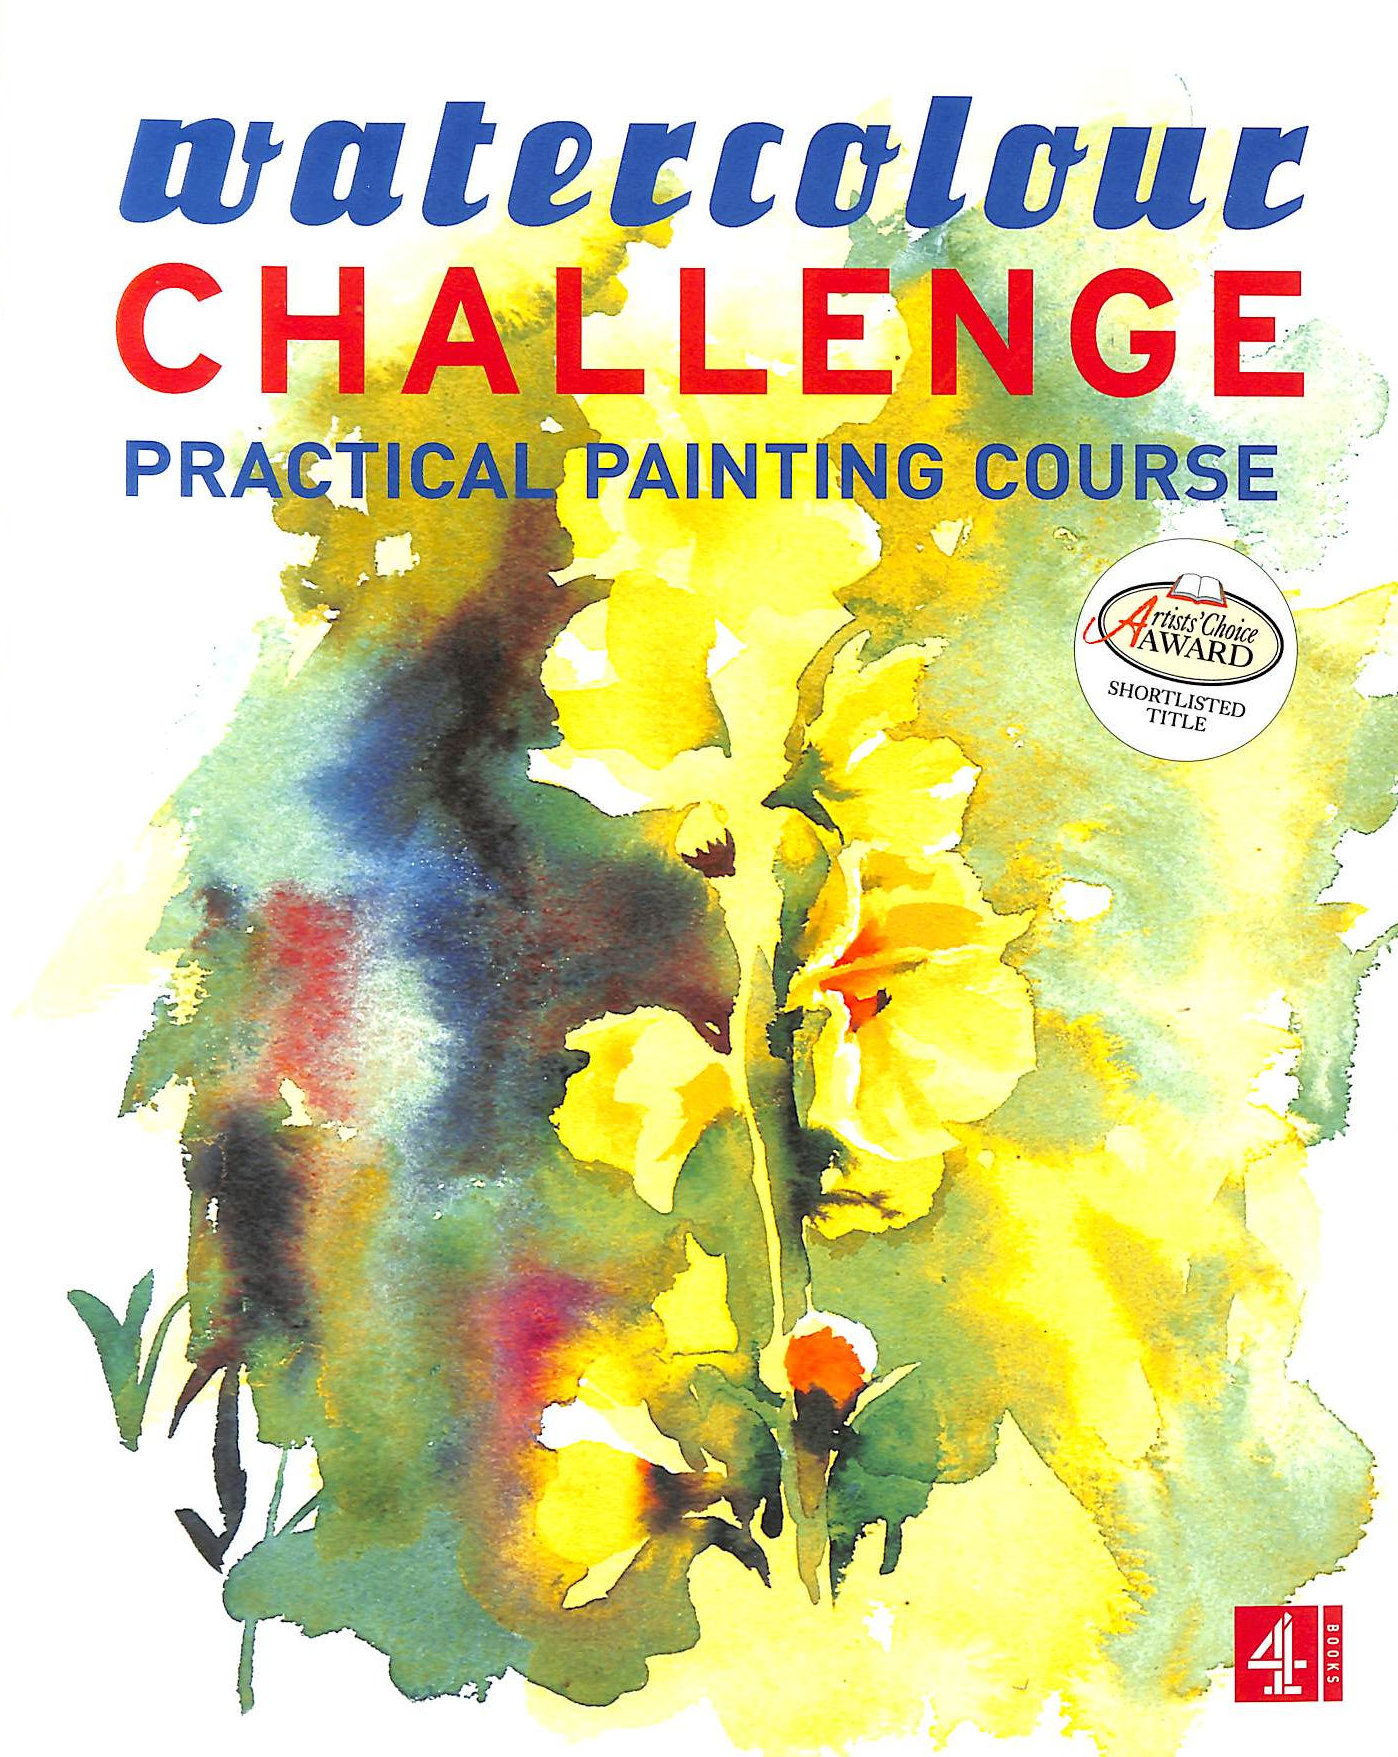 Image for Watercolour Challenge Practical Painting Course